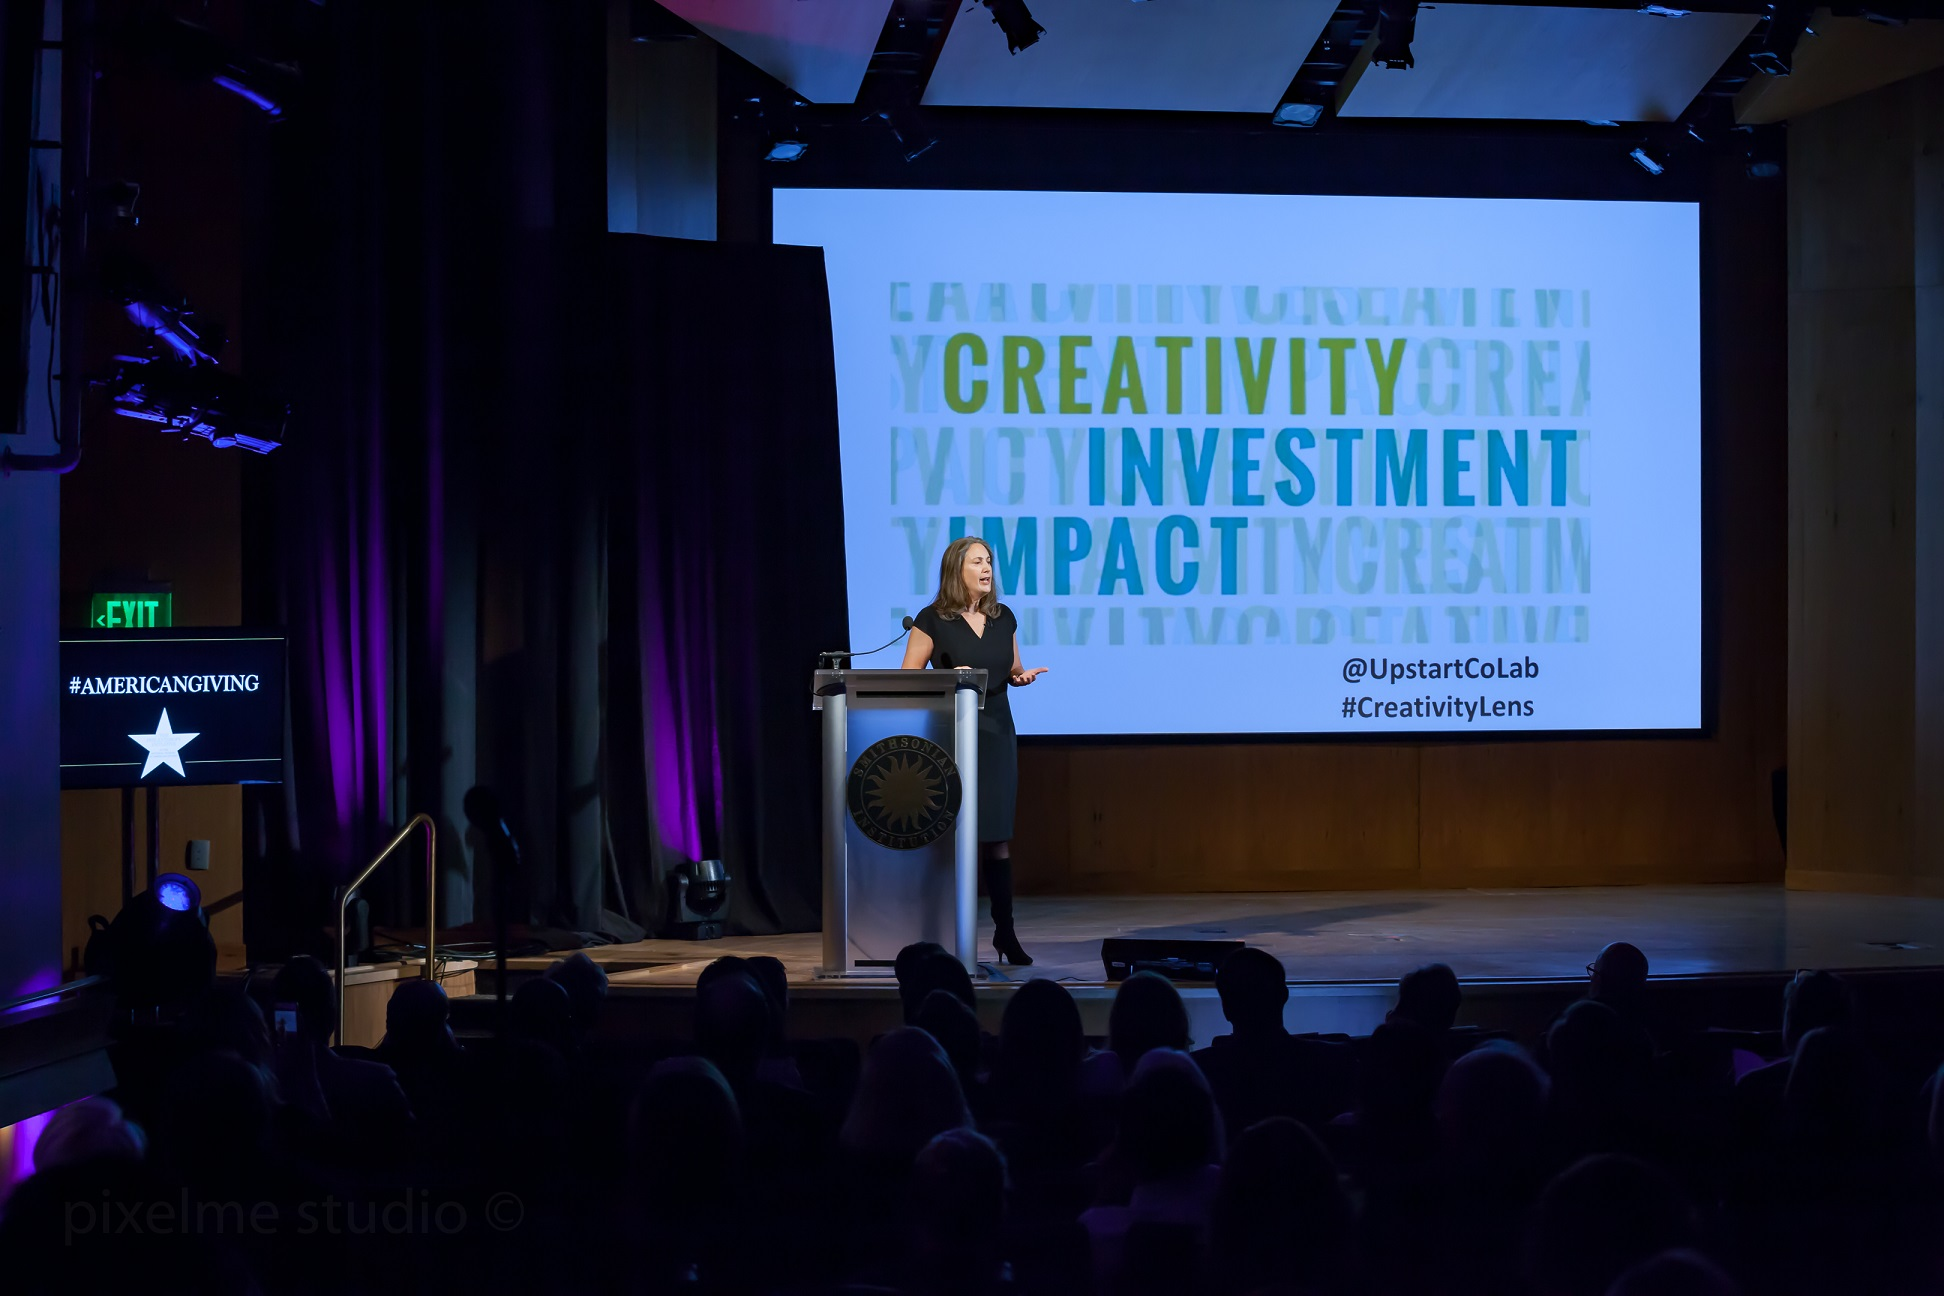 Laura Callanan speaking at the Smithsonian Institution's Power of Giving 2018 symposium on Impact Investing through a Creativity Lens.